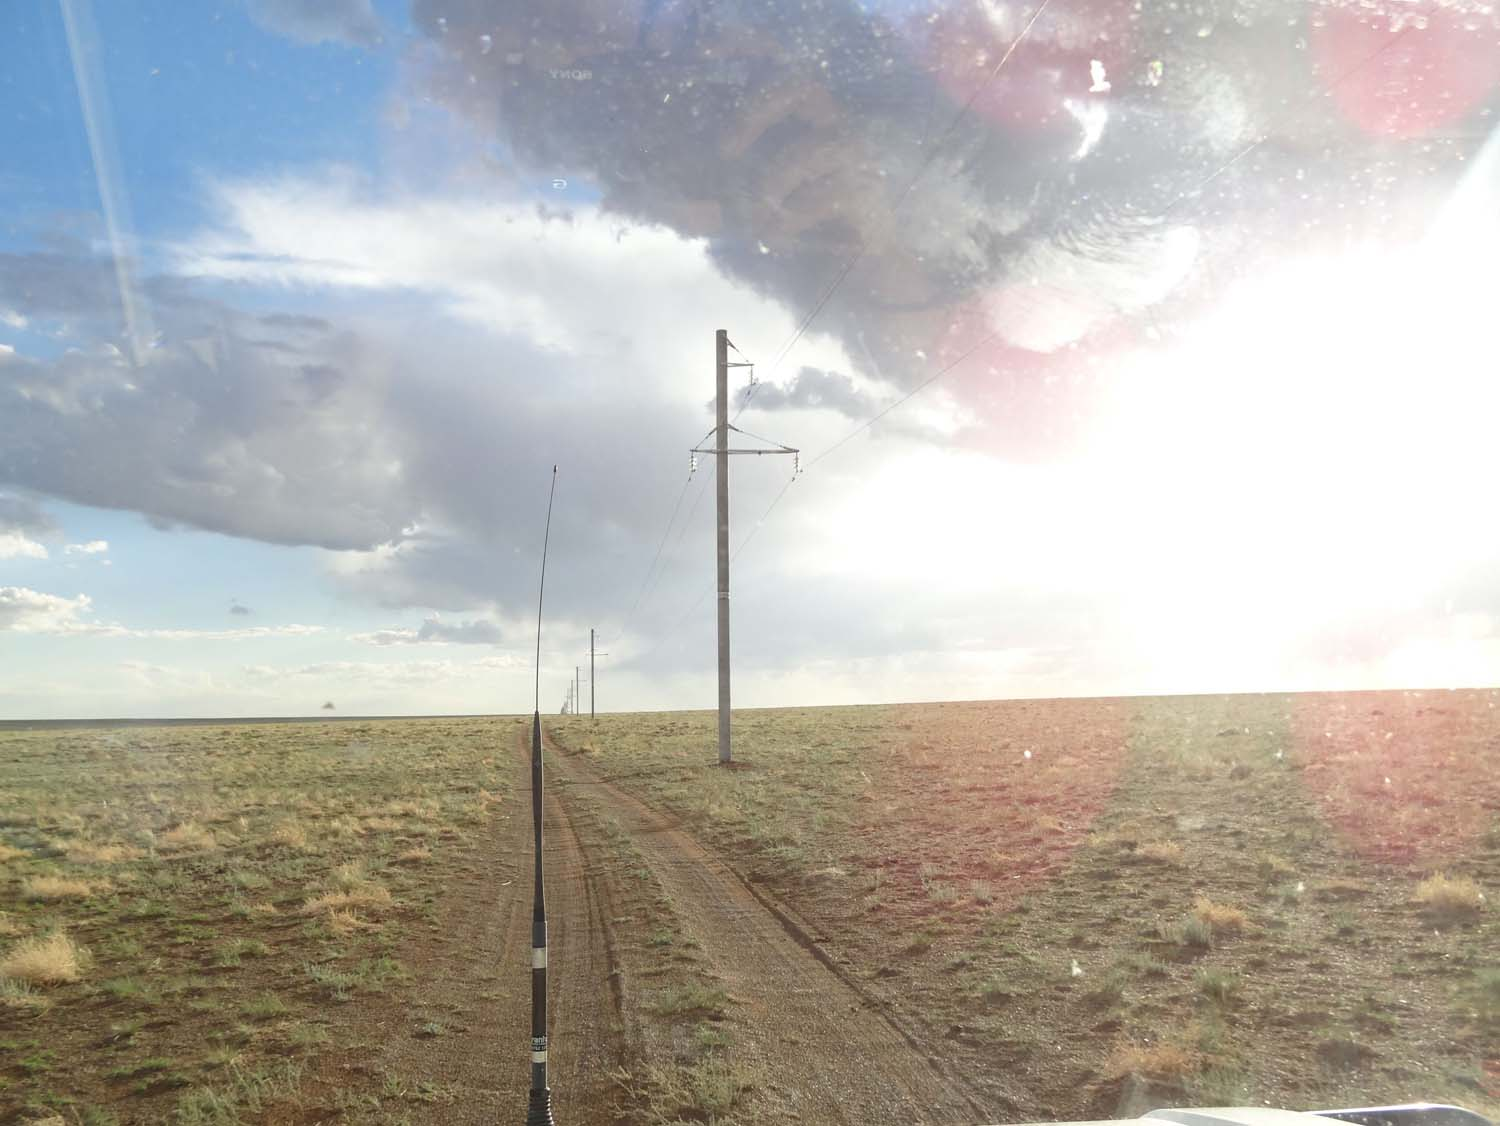 following the tracks next to the telegraph lines in the Gobi